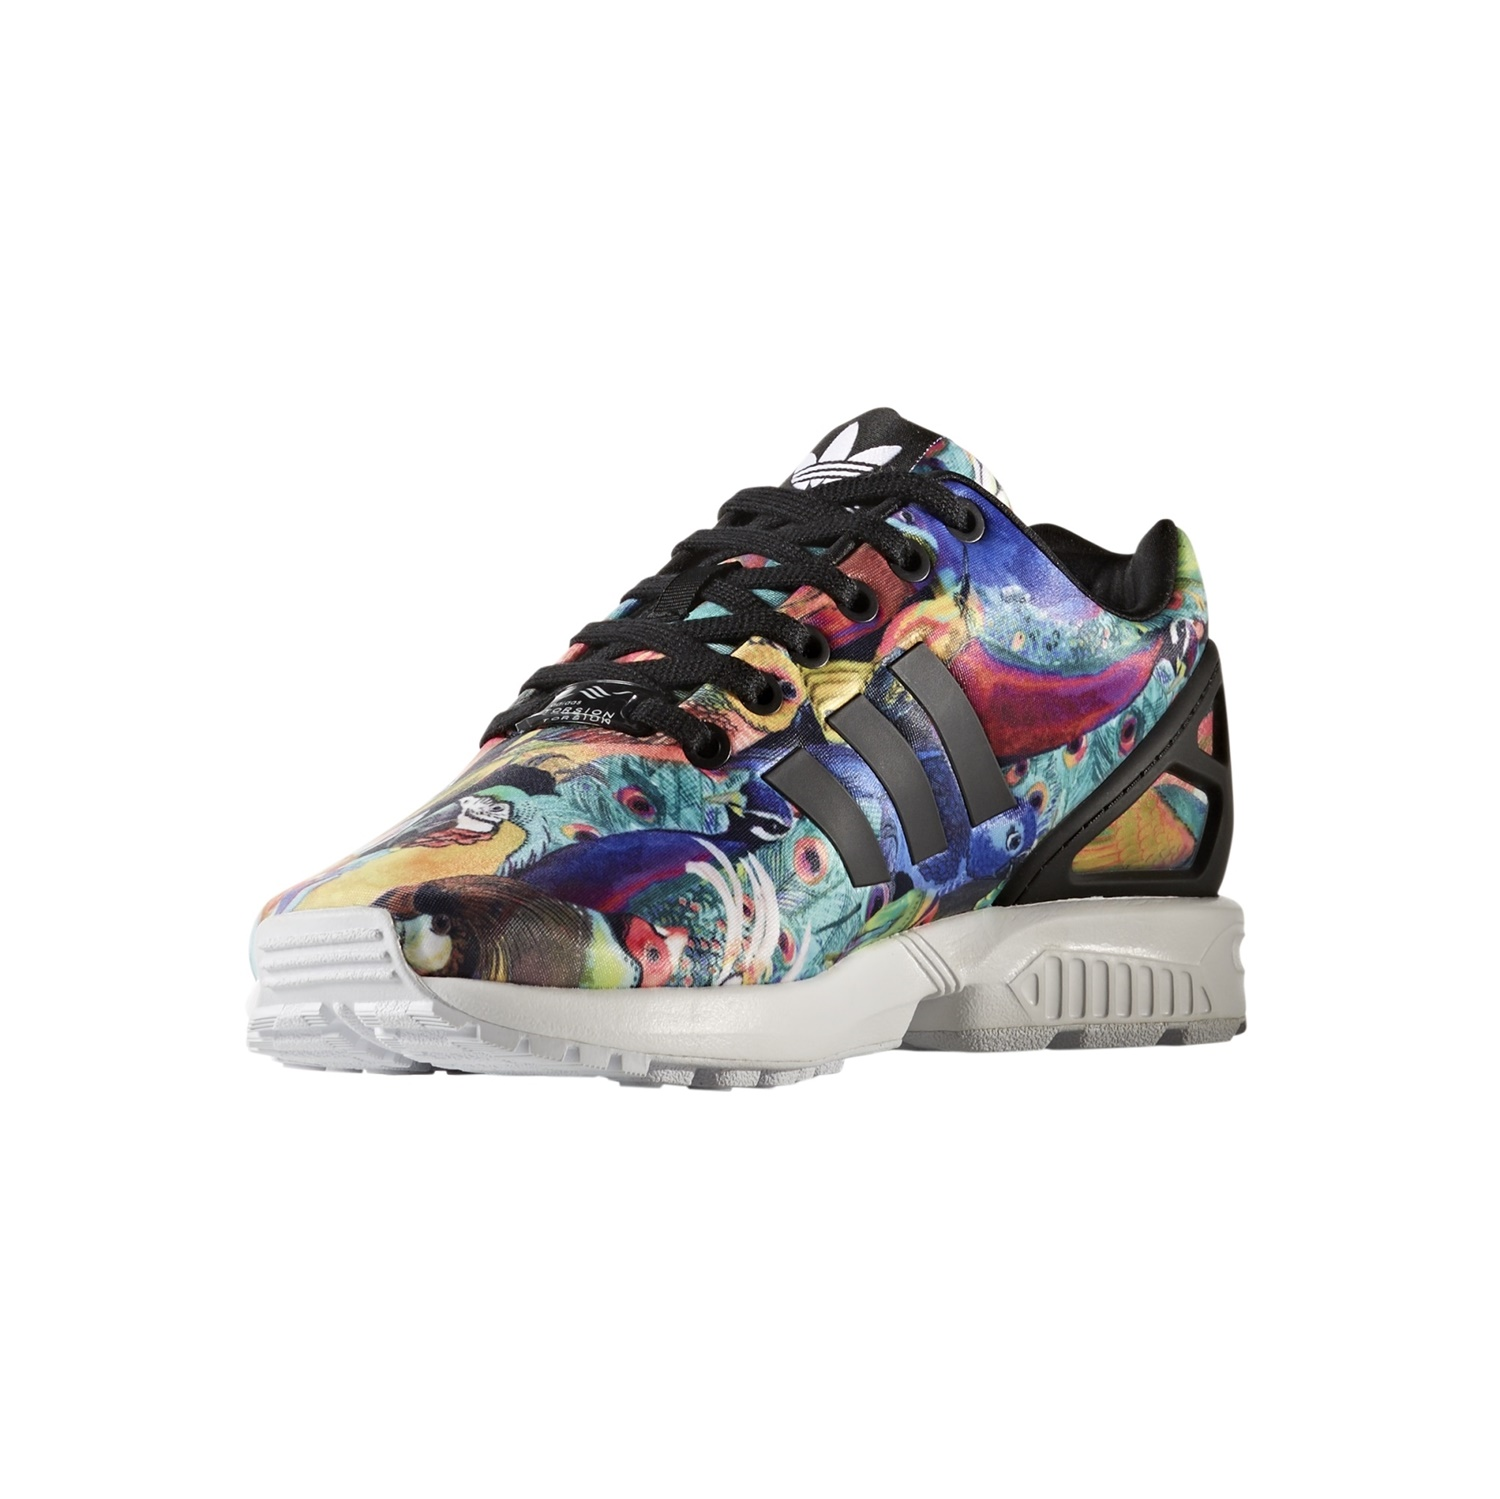 factory price 0a7a3 48d1d Adidas Originals ZX Flux W